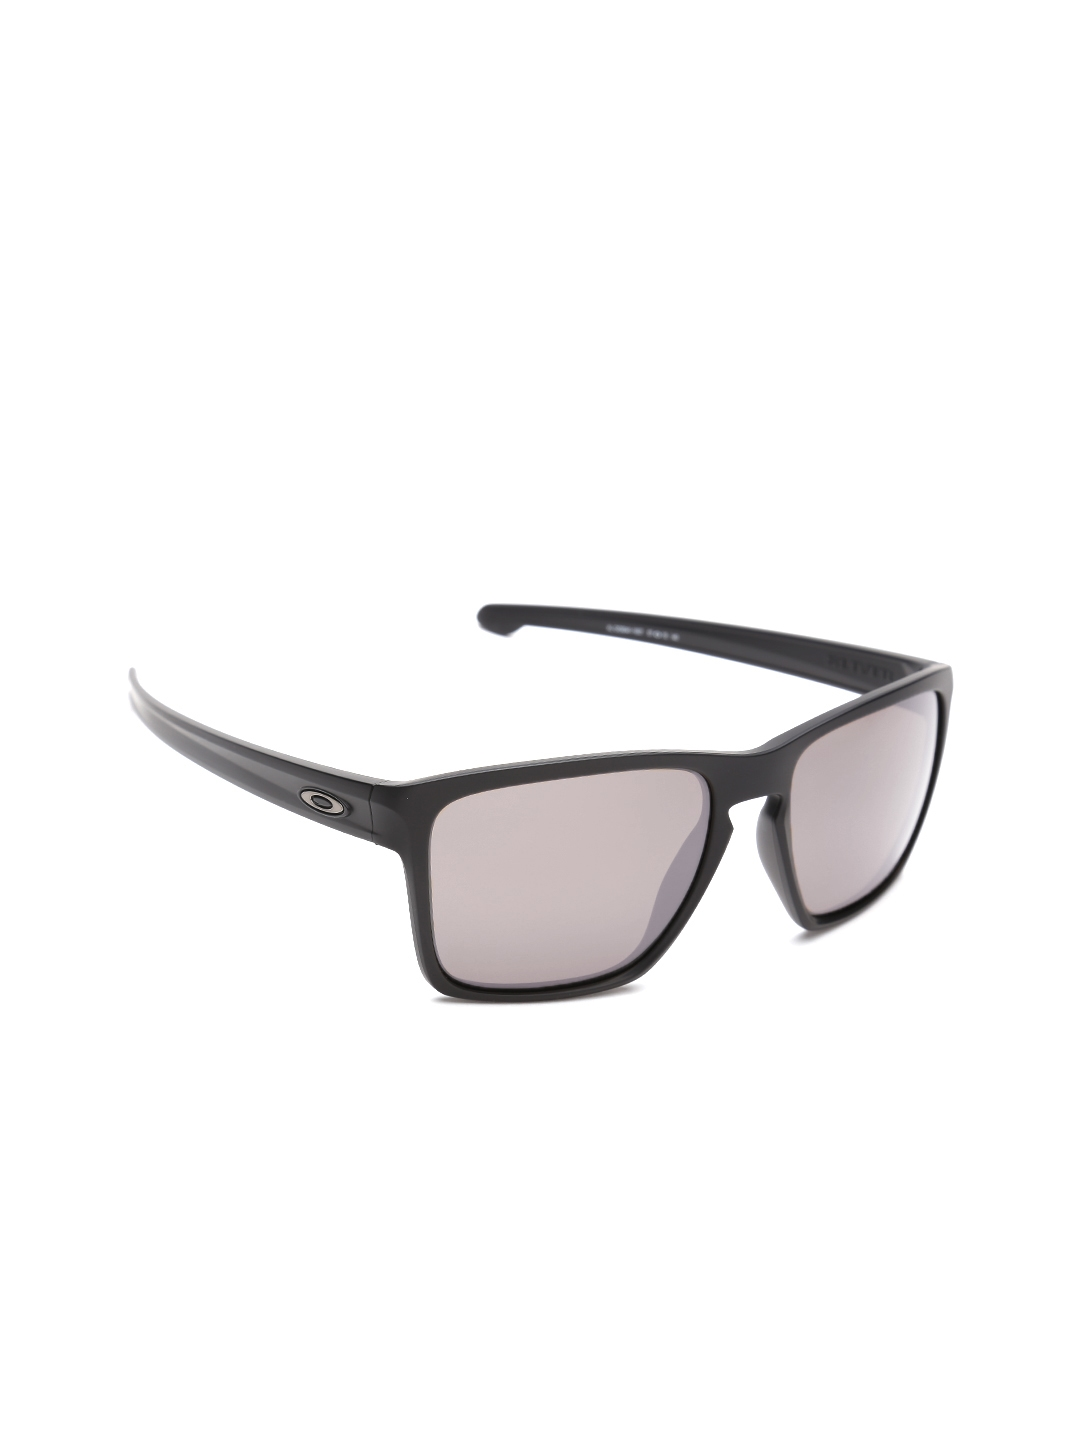 37e1b39329 OAKLEY Men Polarised Mirrored Square Sunglasses  0OO934193411557-934115-1747803